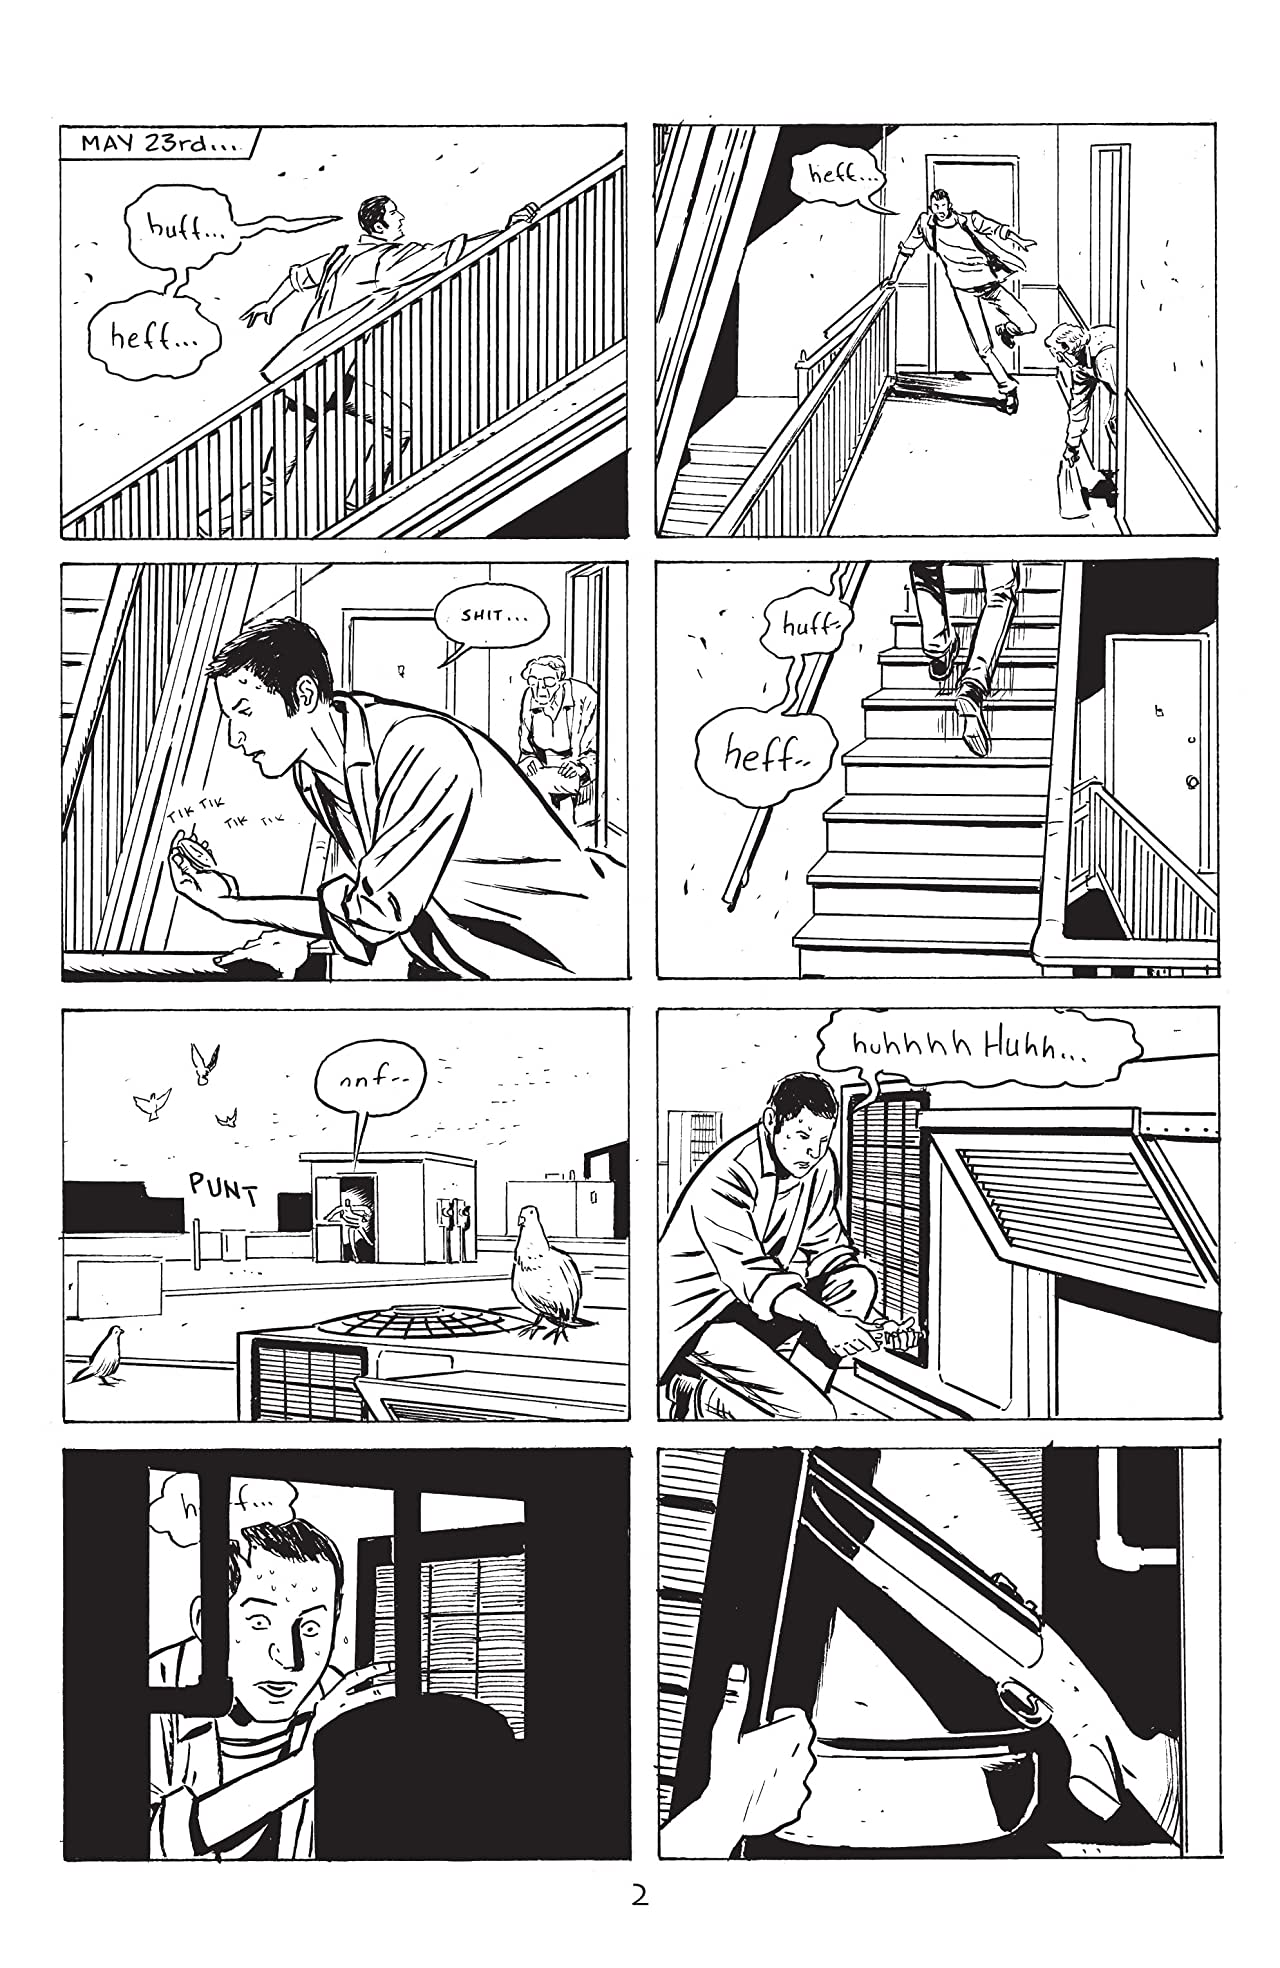 Stray Bullets: Sunshine & Roses #1